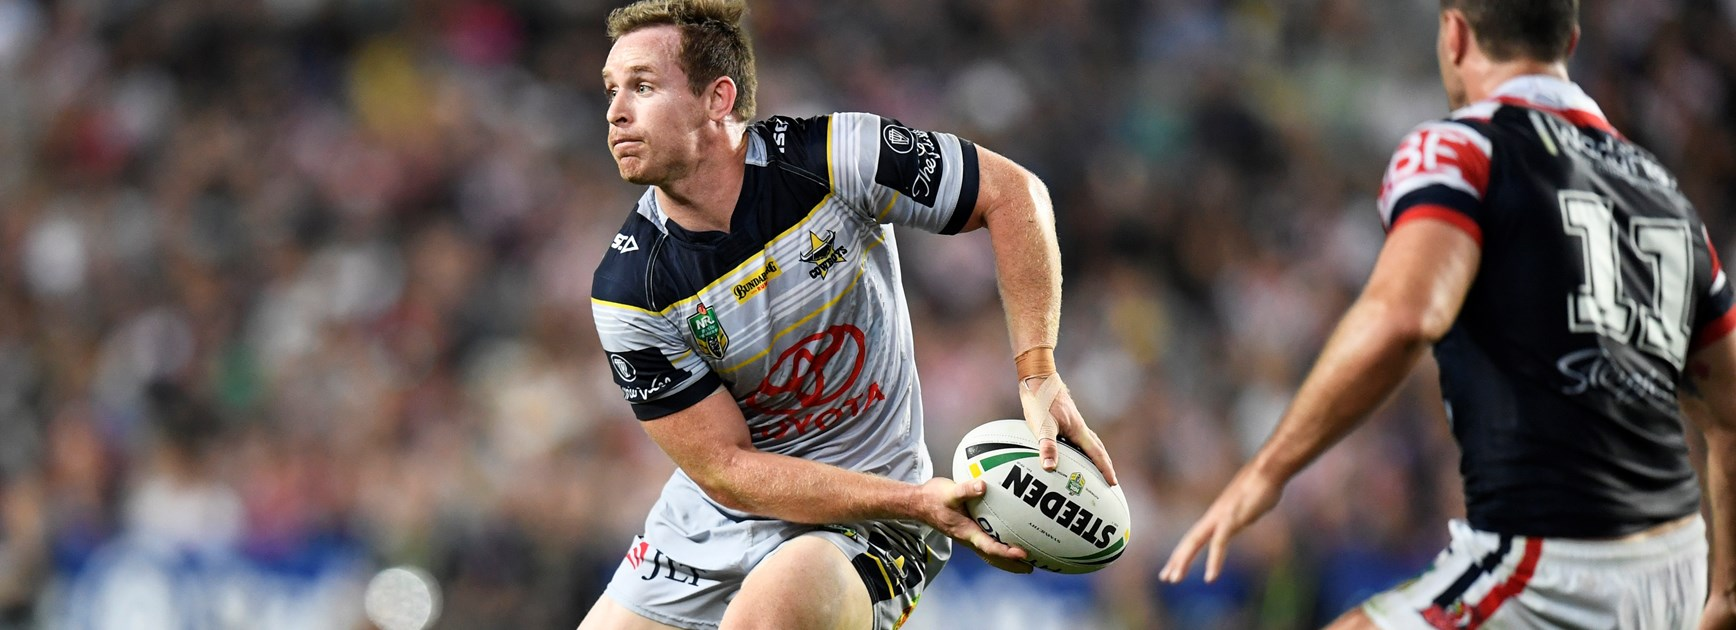 Morgan inks five-year Cowboys deal